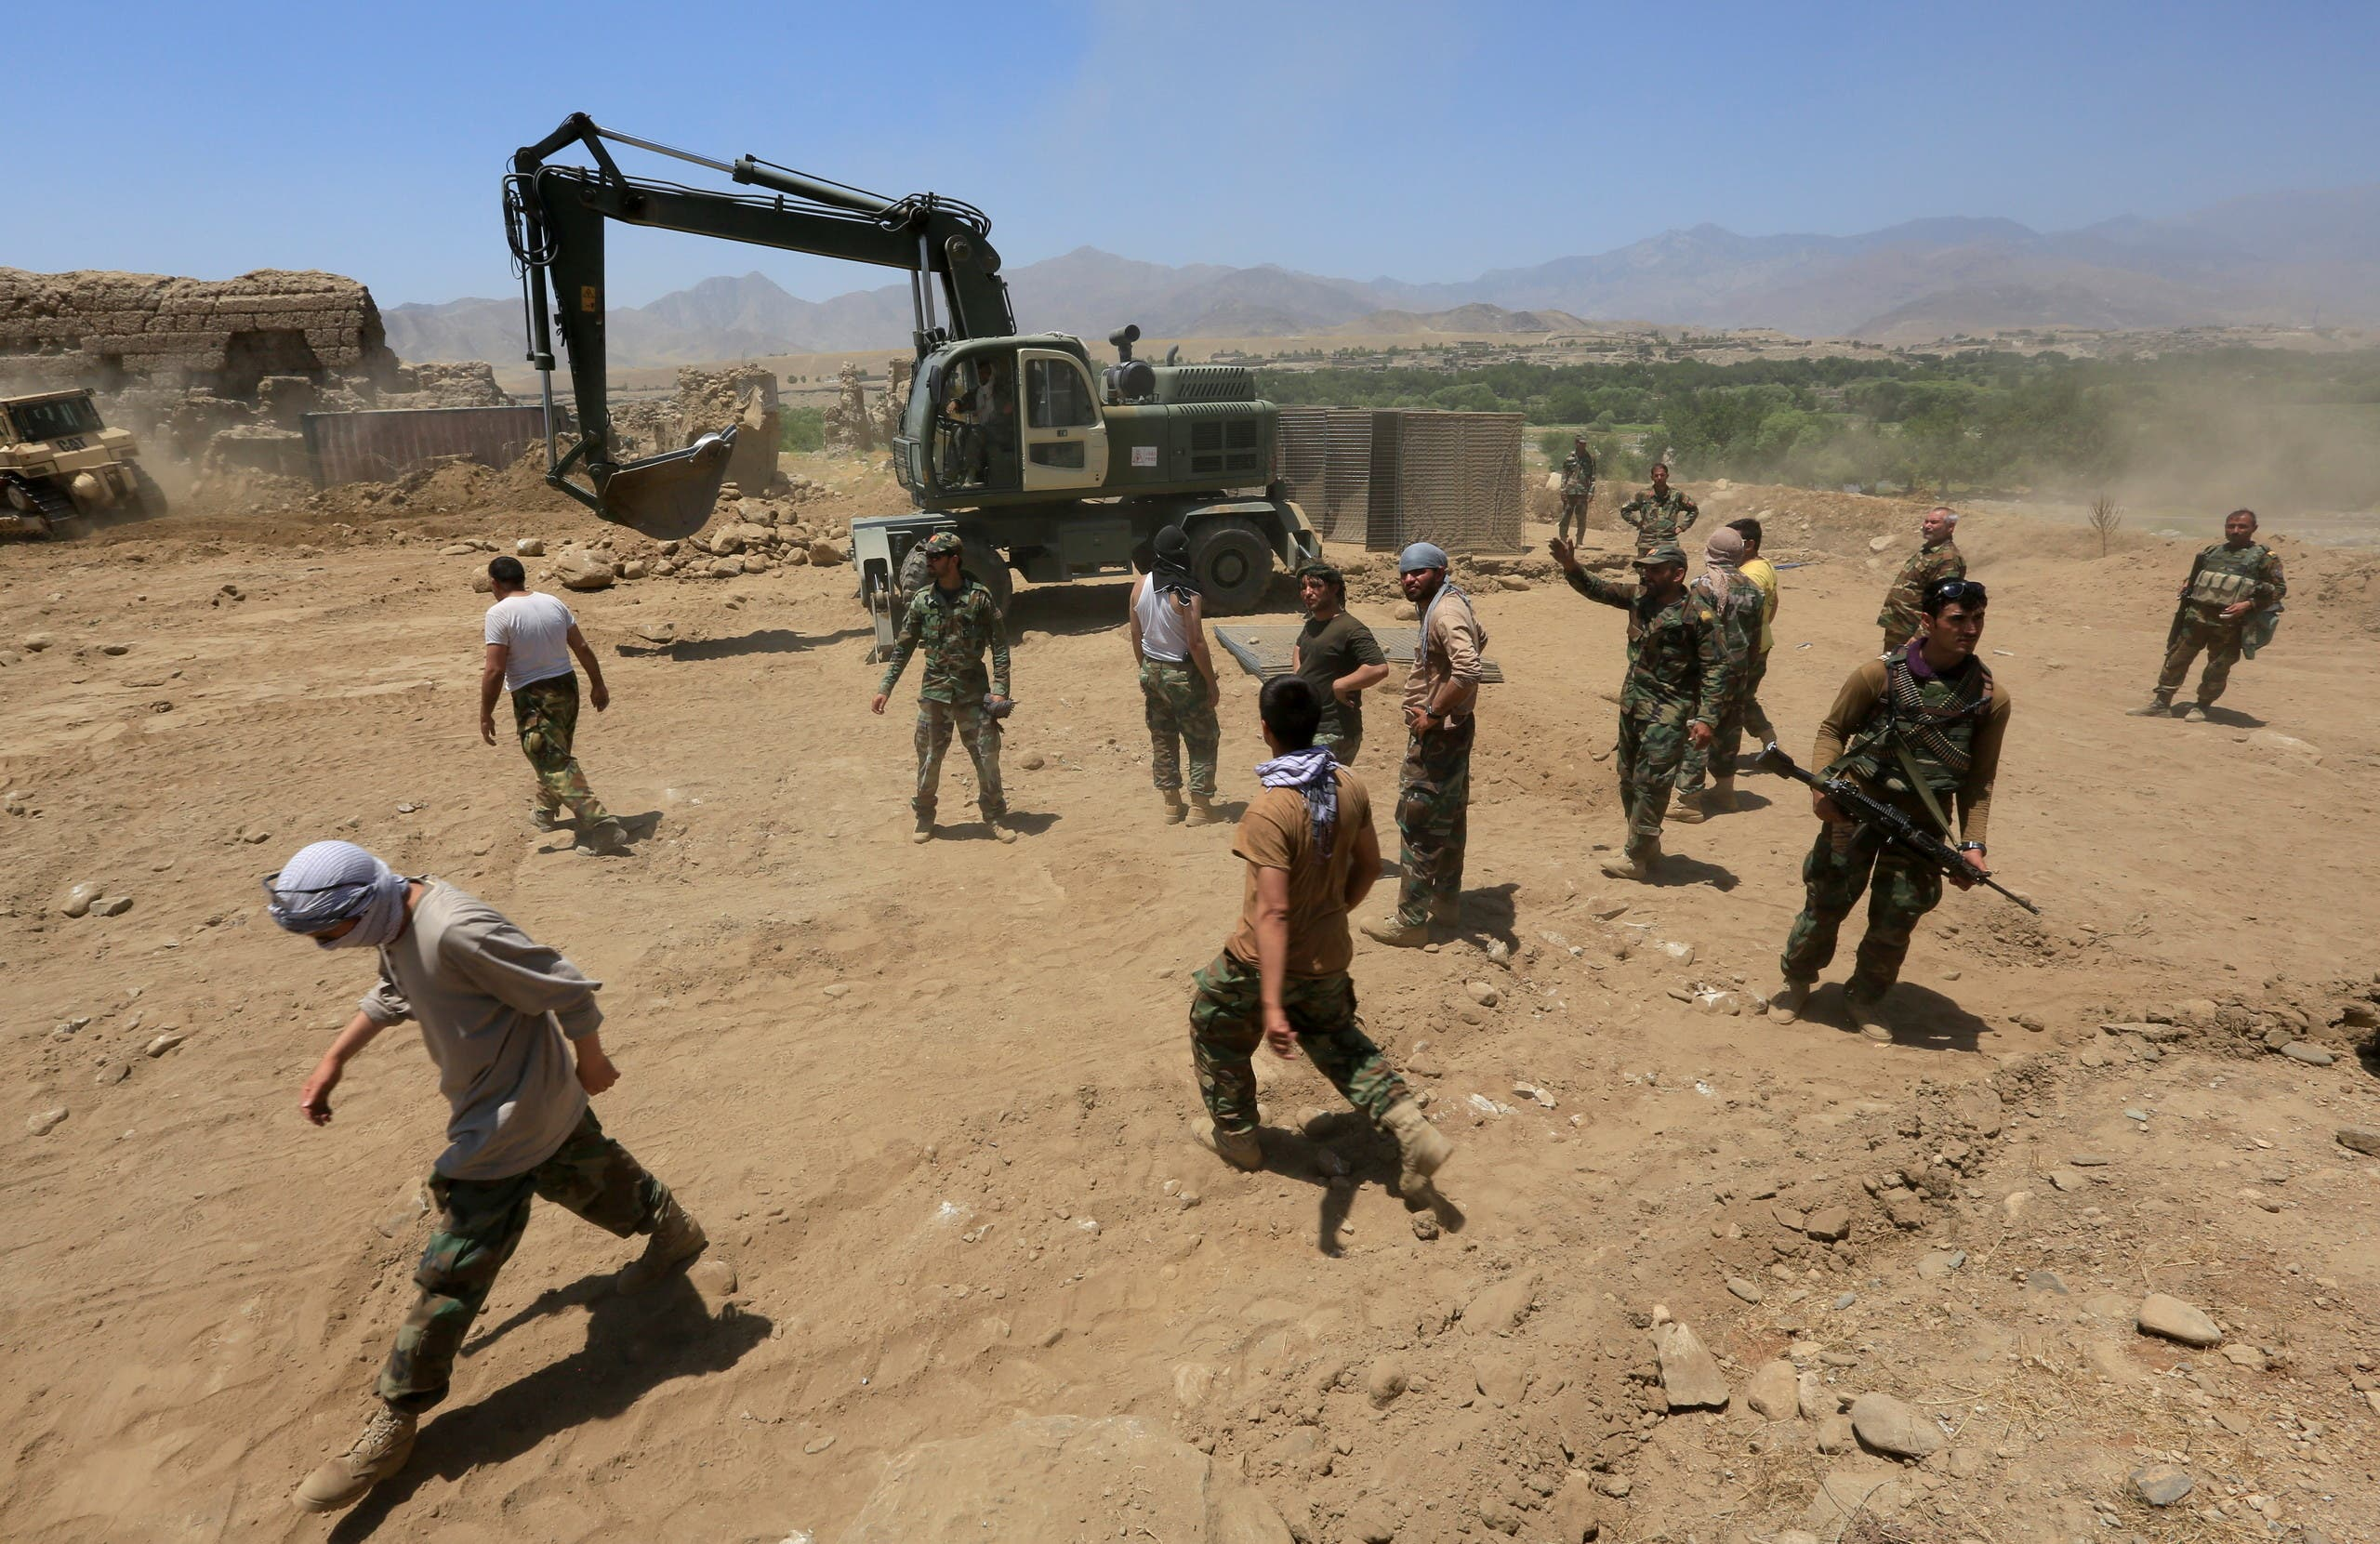 Afghan National Army (ANA) soldiers rebuild a checkpoint recaptured from the Taliban, in the Alishing district of Laghman province, Afghanistan July 8, 2021. (File photo: AFP)